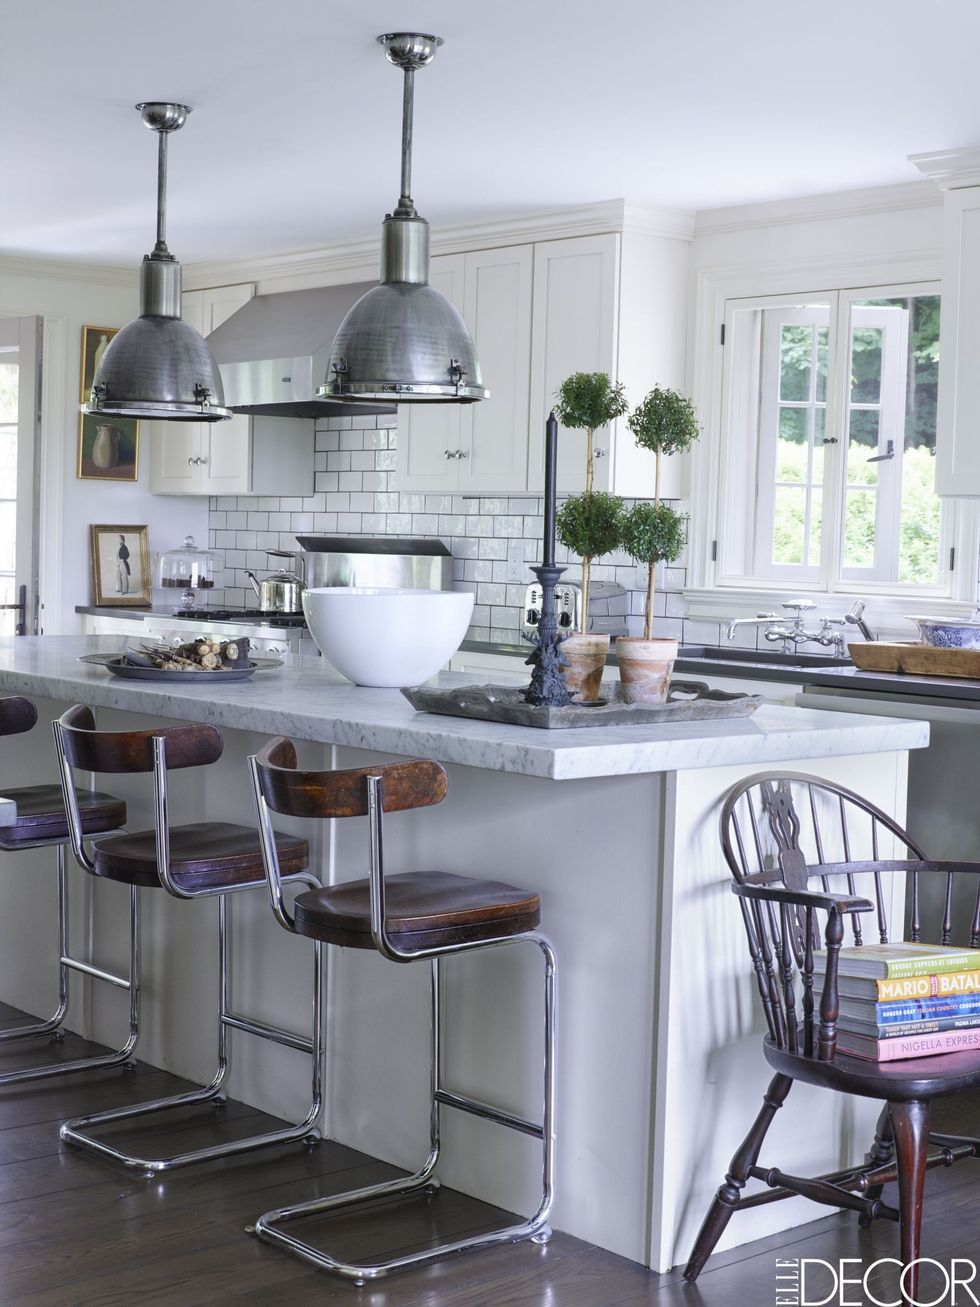 50+ ideas for designing small kitchens - FIVYRAC decorate small kitchens